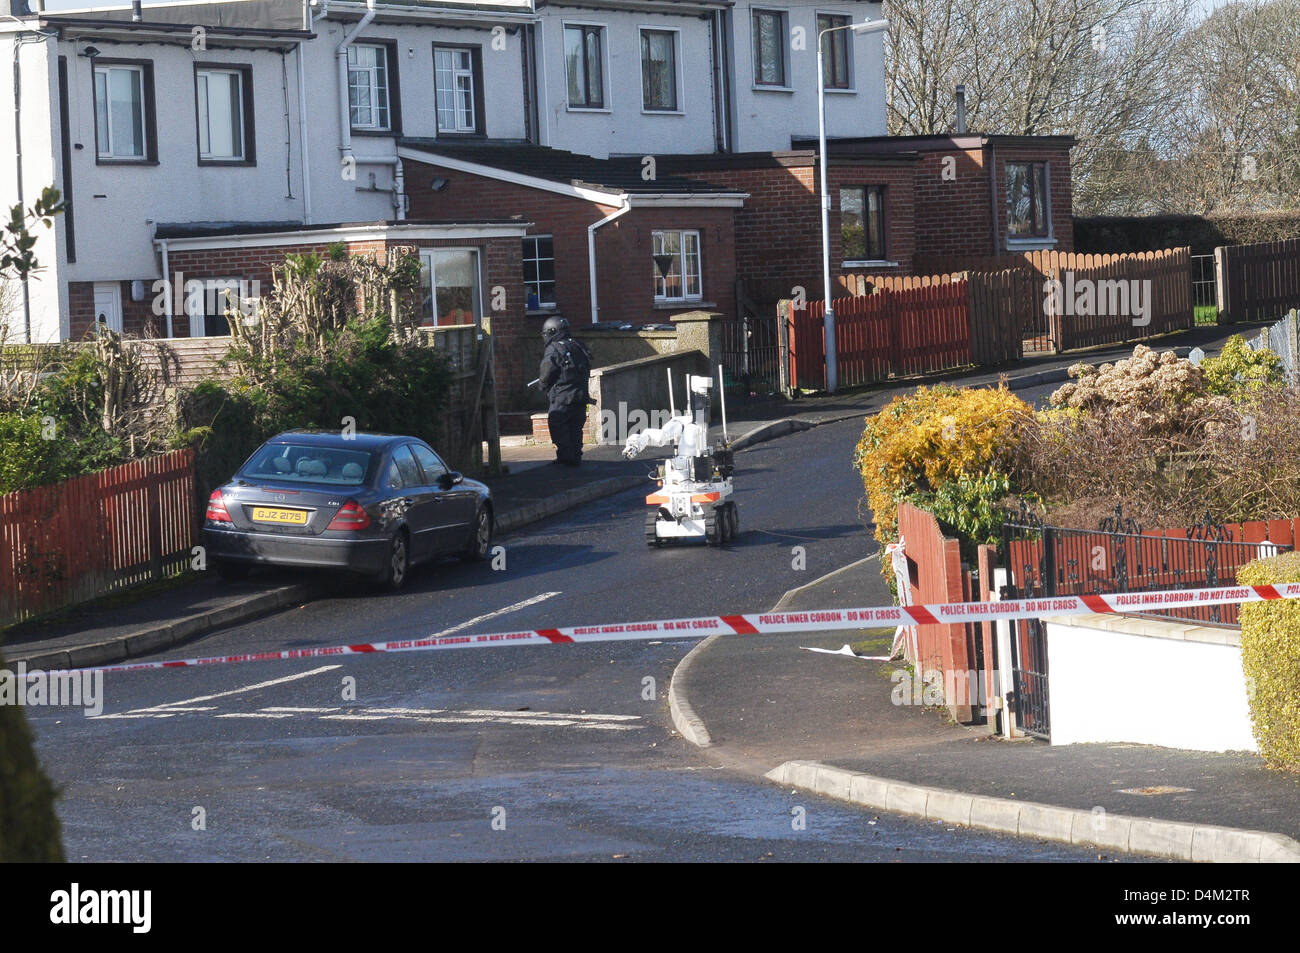 Armagh, Northern Ireland. 15th March 2013. Bomb squad officer approaches a suspected bomb at a house in Alexandra - Stock Image